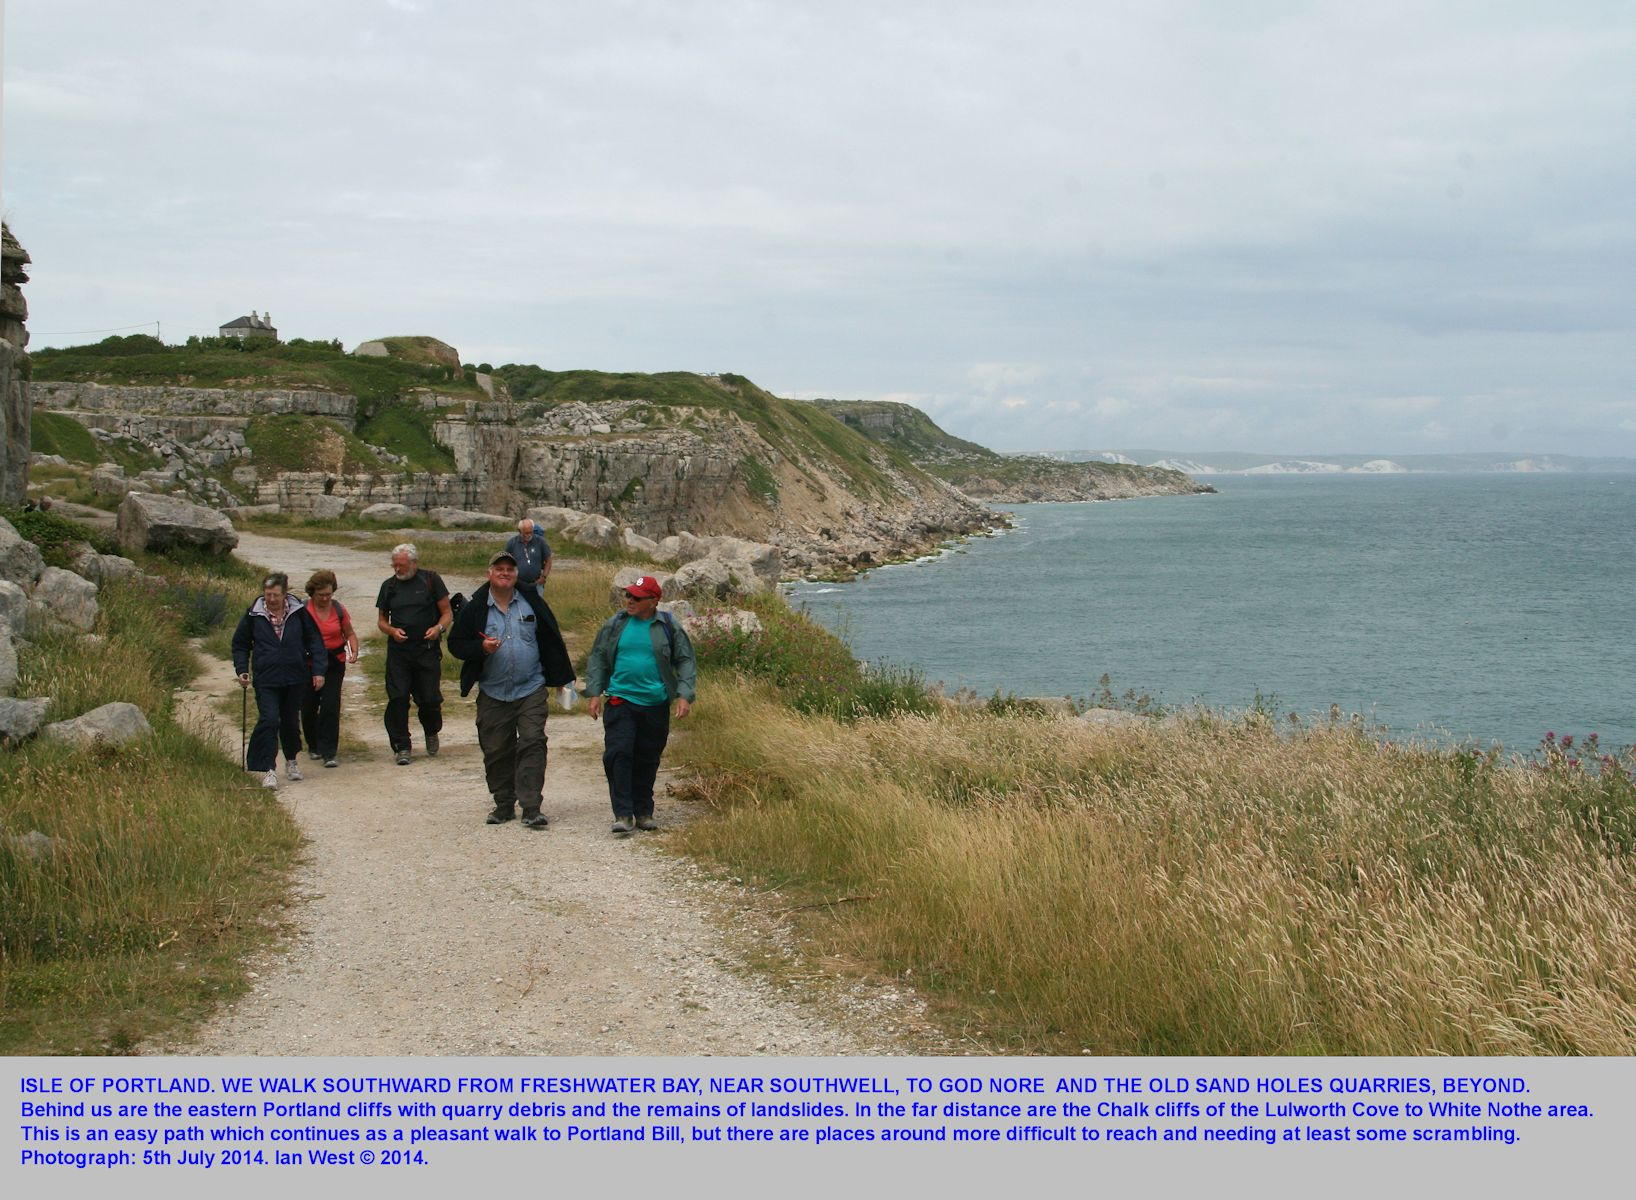 Walking on the cliff path from Freshwater, Isle of Portland, Dorset, to the old coastal quarries at Sand Holes and God Nore